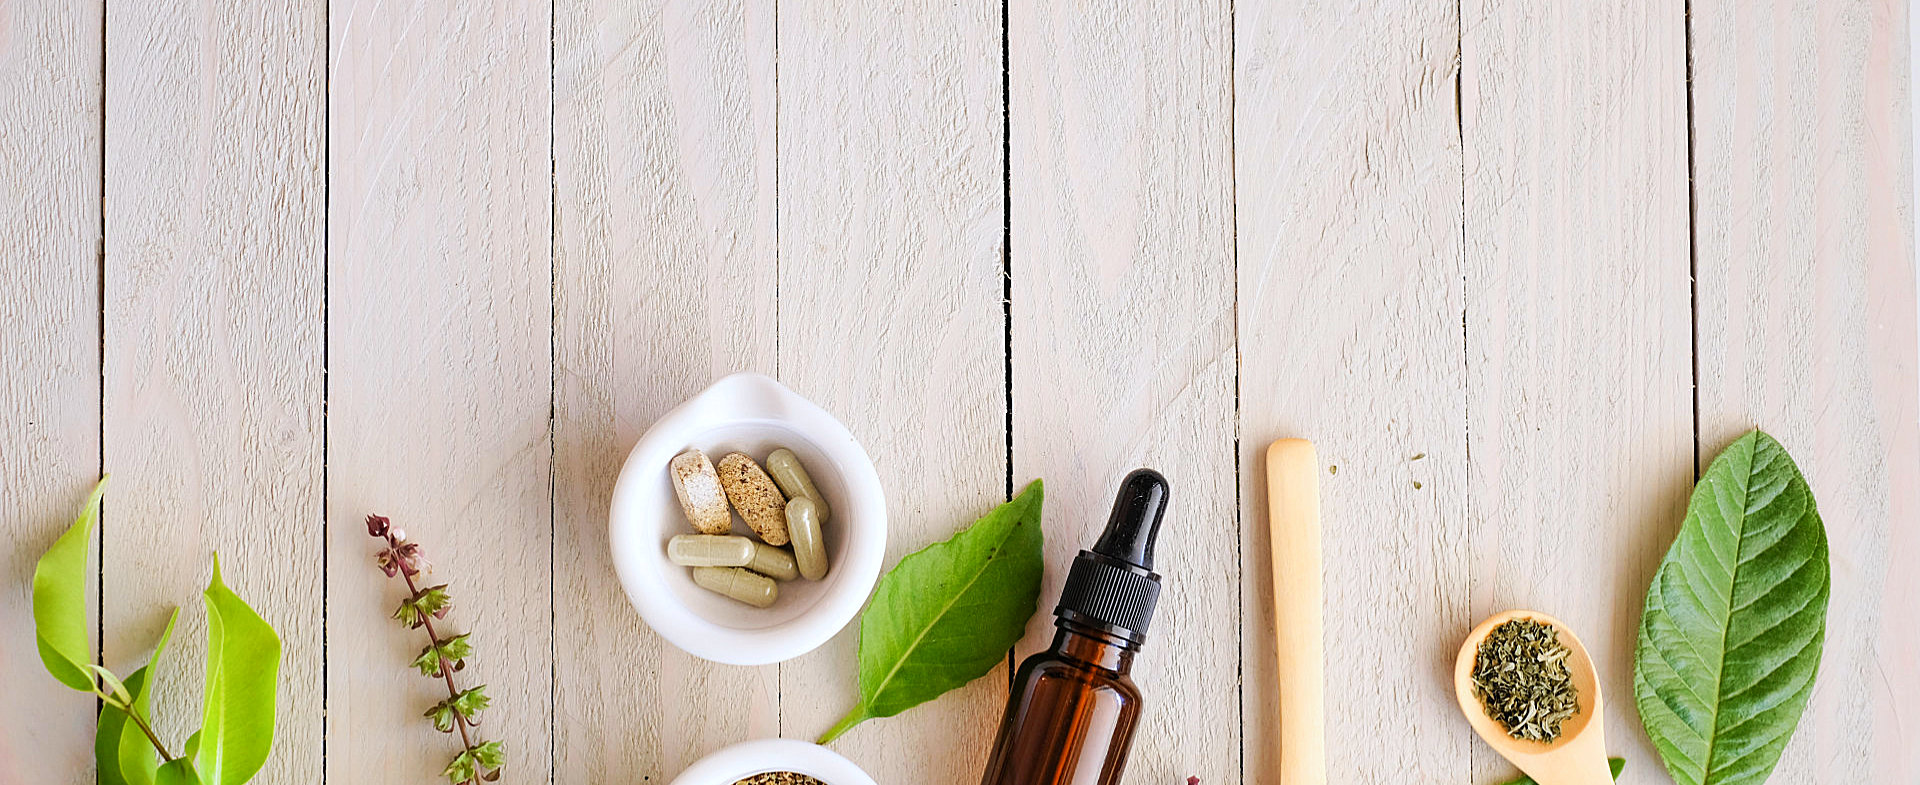 herbal and medicines